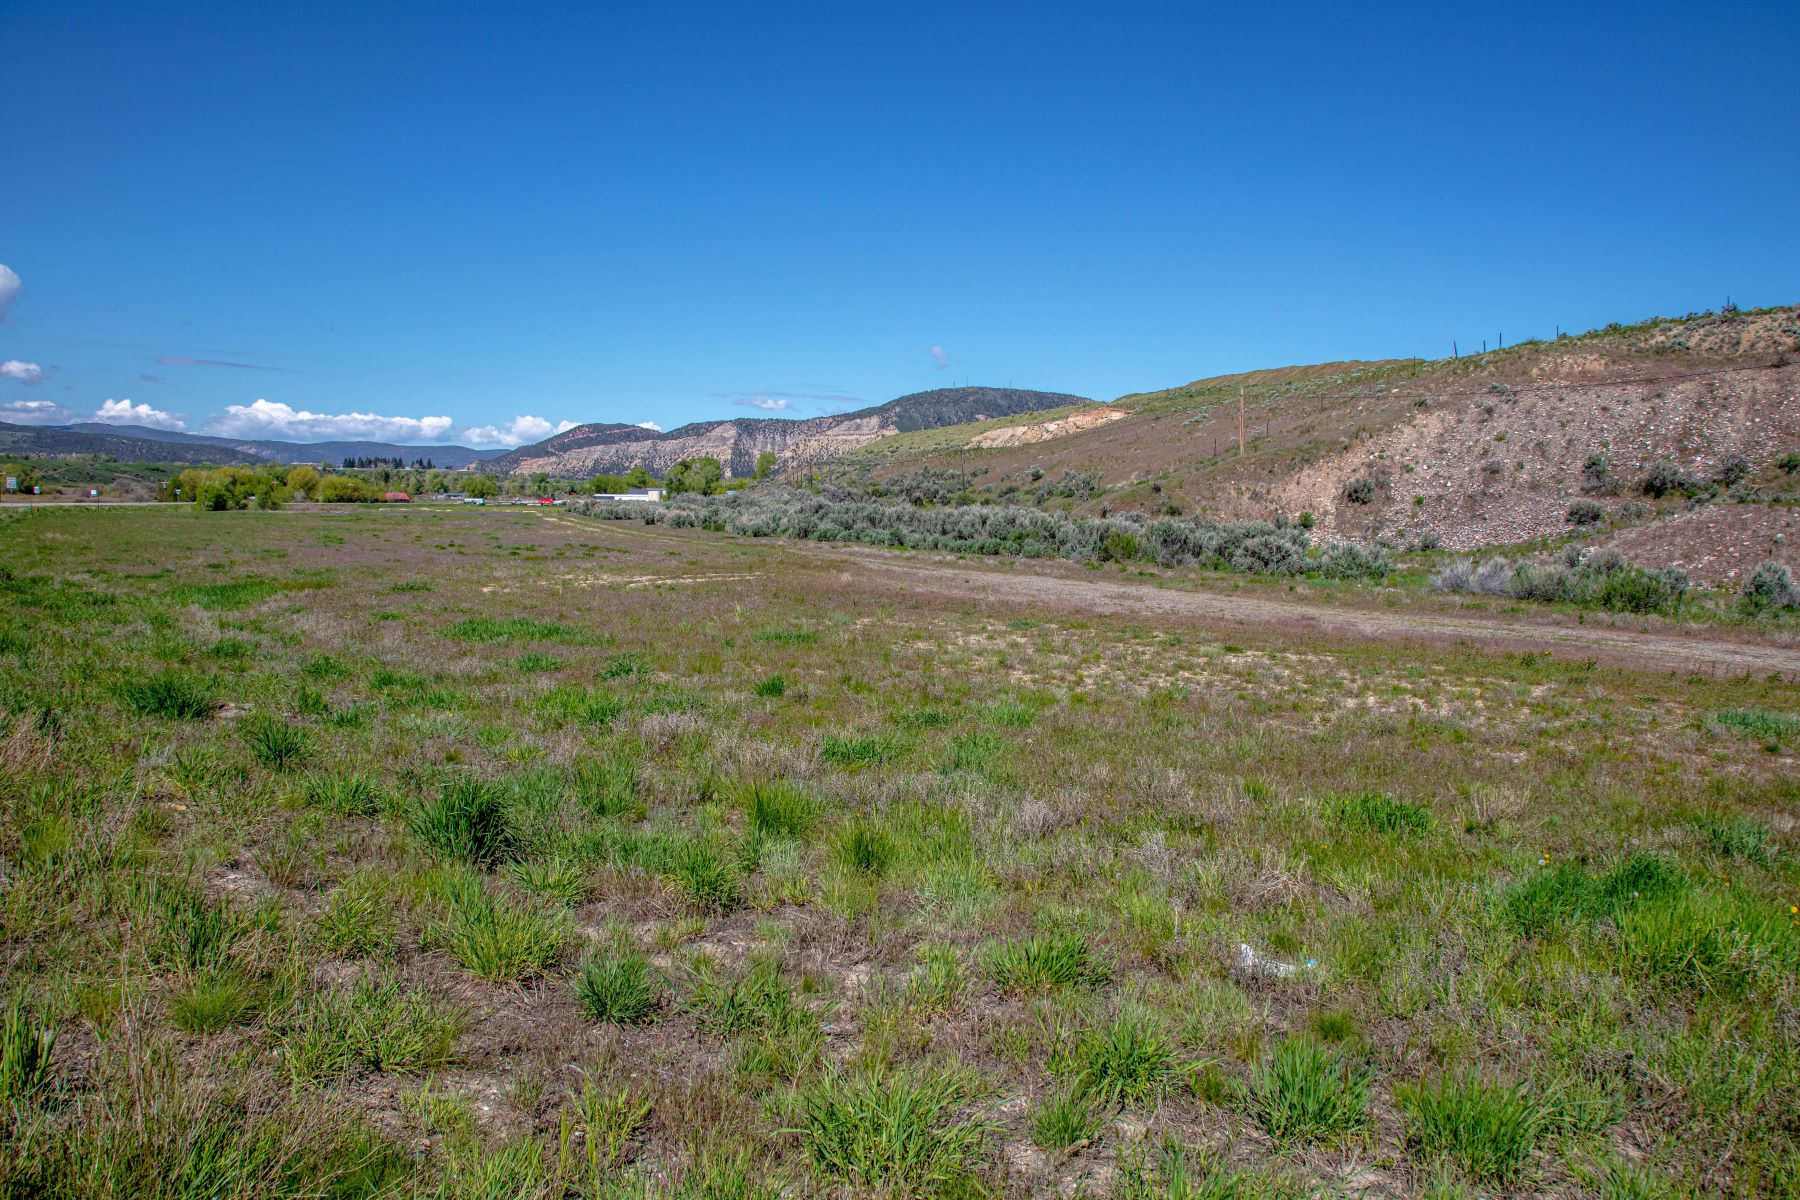 Land for Sale at Commercial Vacant Land in Meeker 43523 Highway 13 Meeker, Colorado 81641 United States